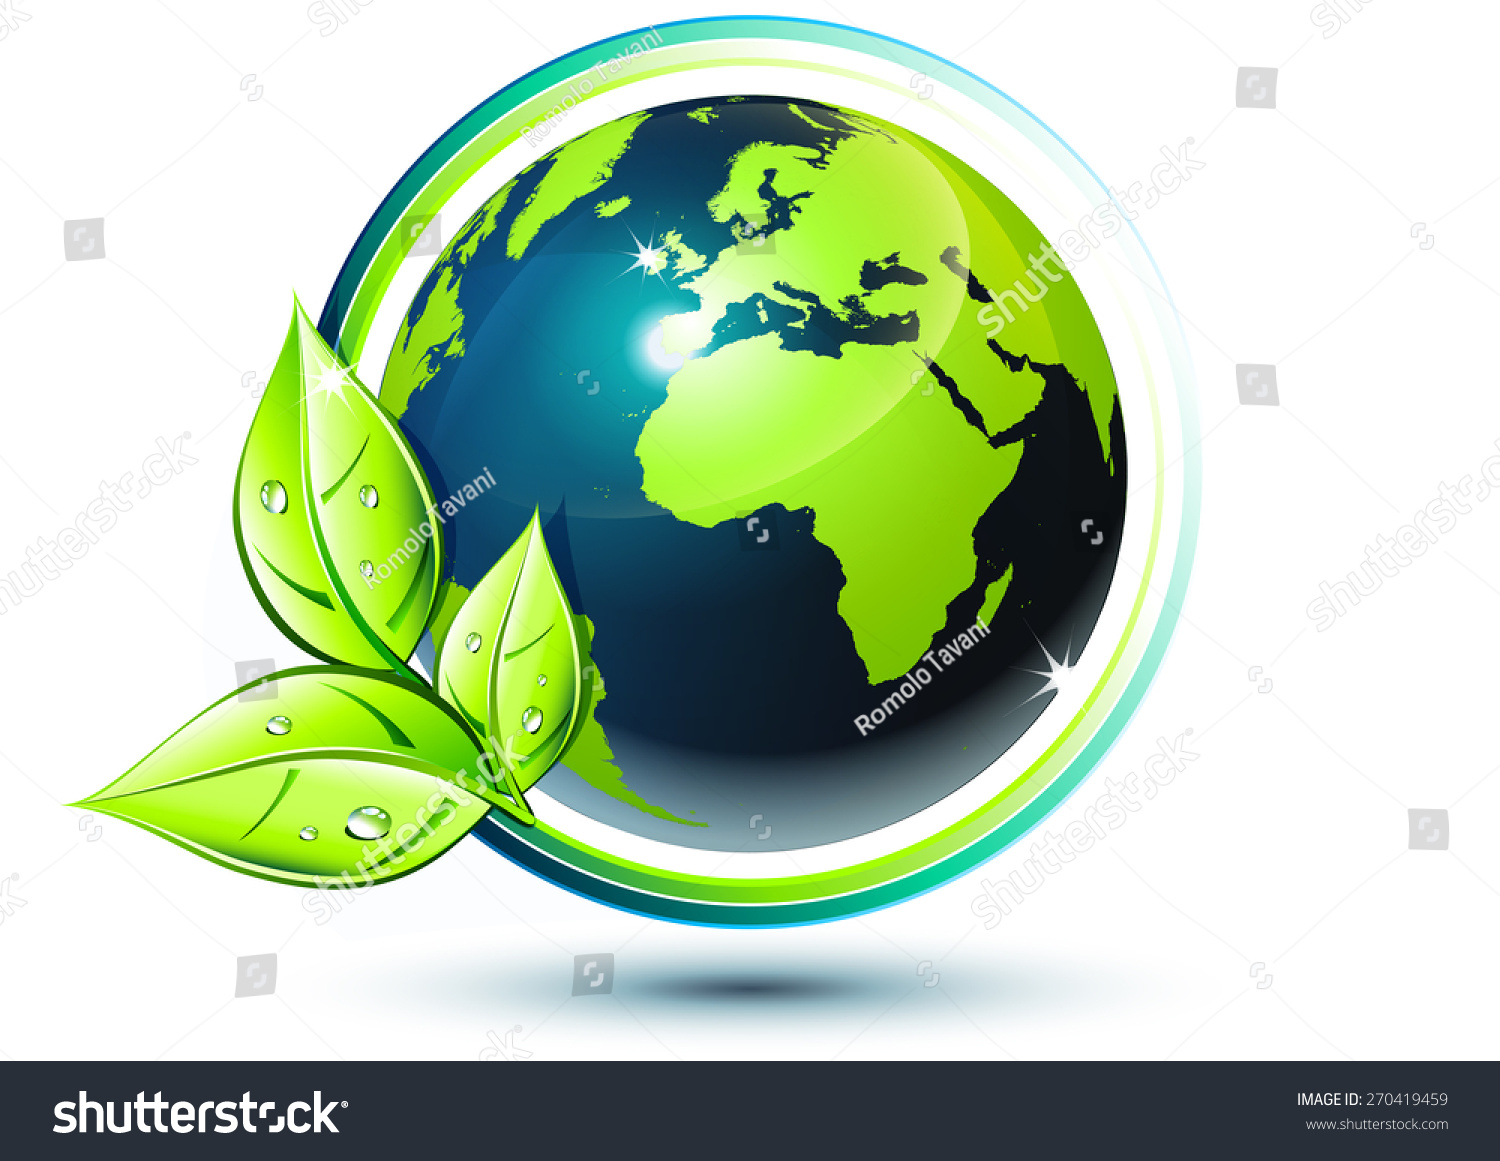 green earth ecofriendly concept stock vector 270419459 shutterstock. Black Bedroom Furniture Sets. Home Design Ideas